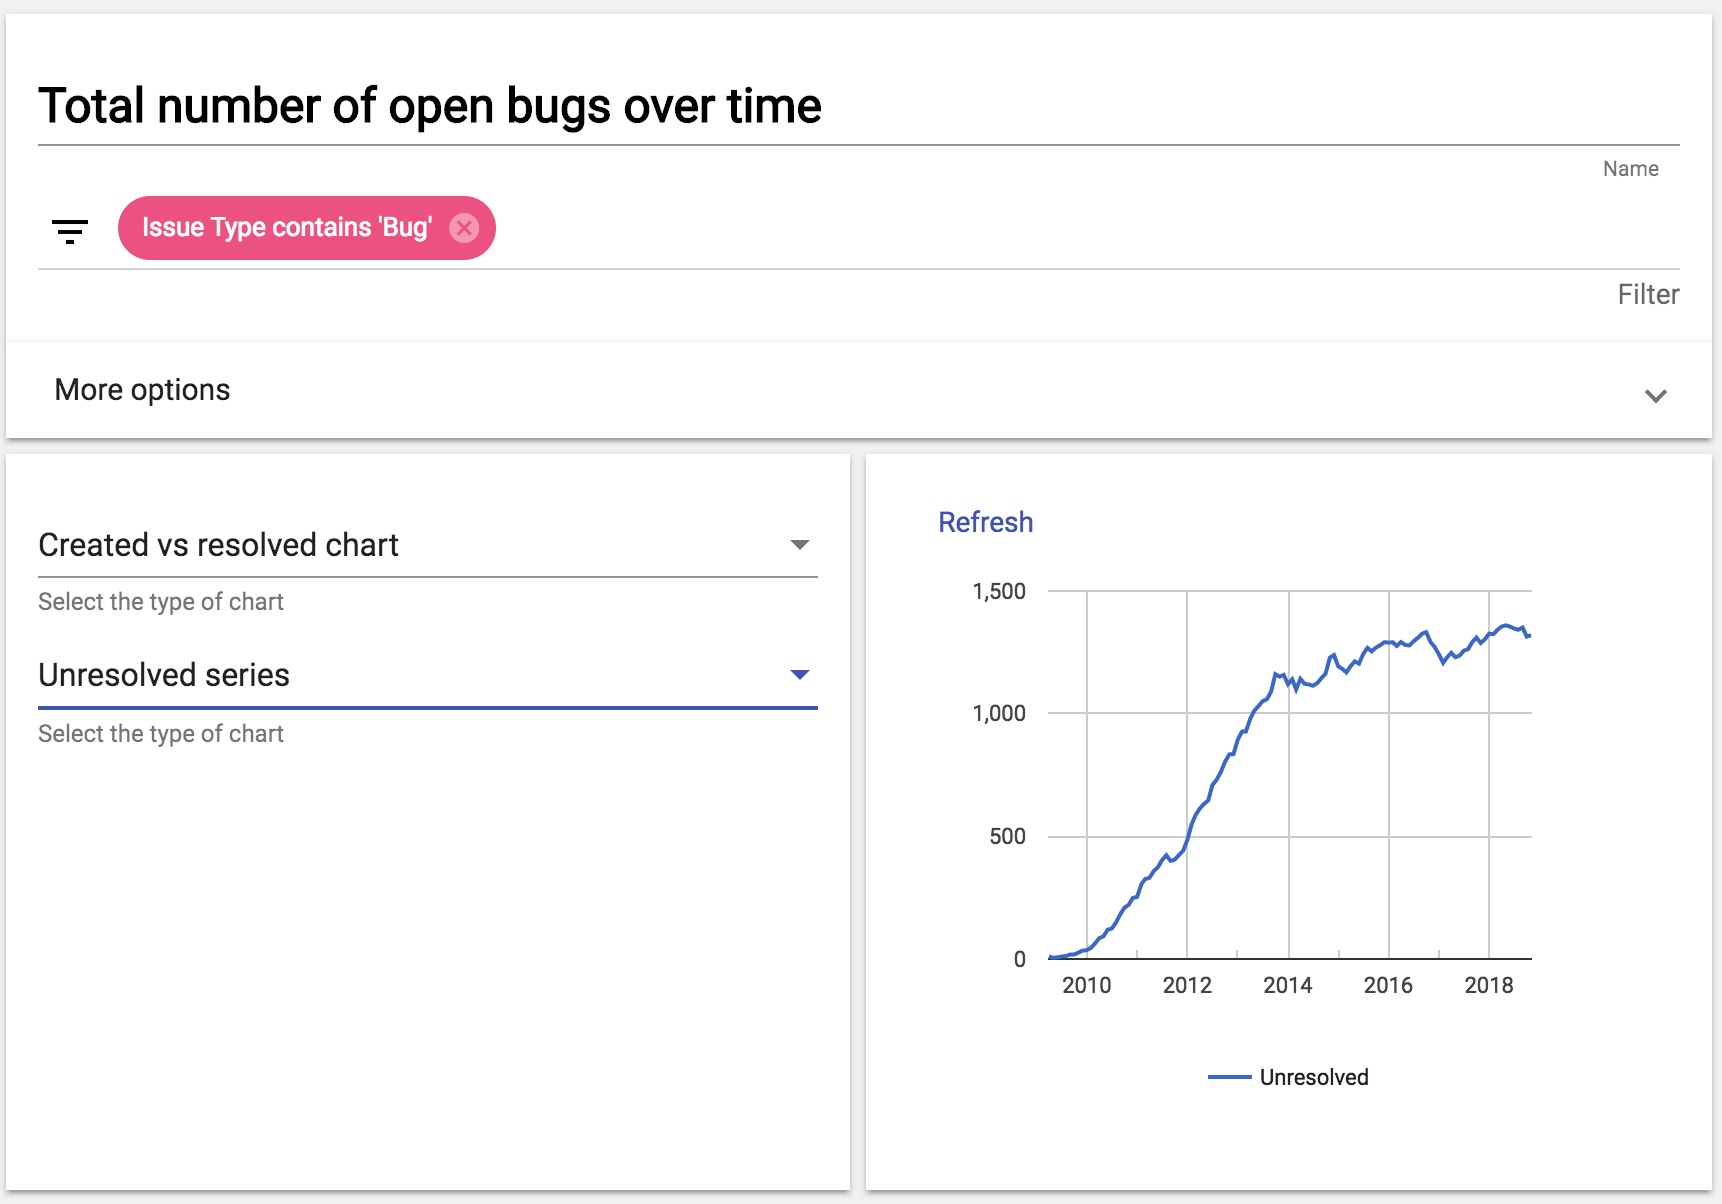 Total number of open bugs over time